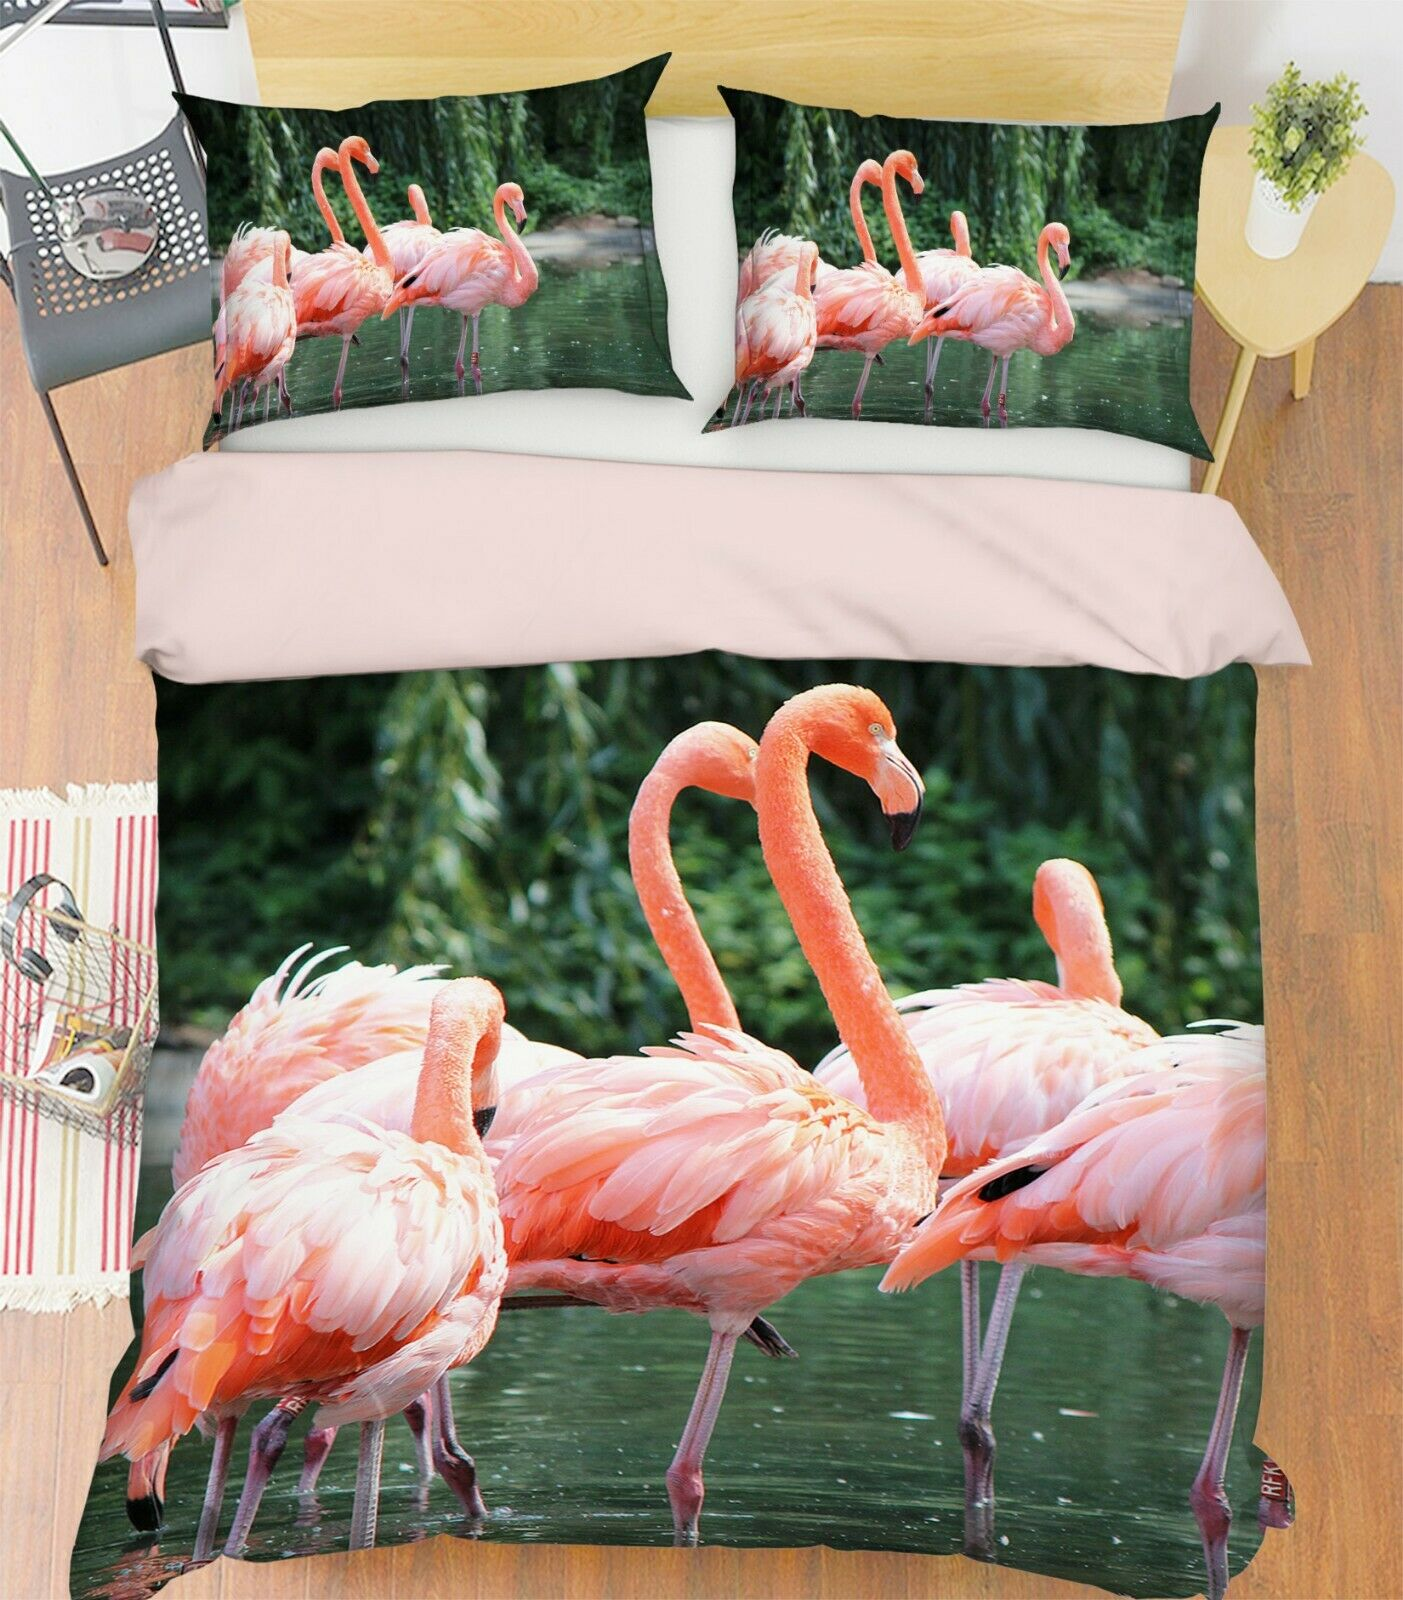 3D Flamingo River P02 Animal Bed Pillowcases Quilt Duvet Cover Set Queen Zoe